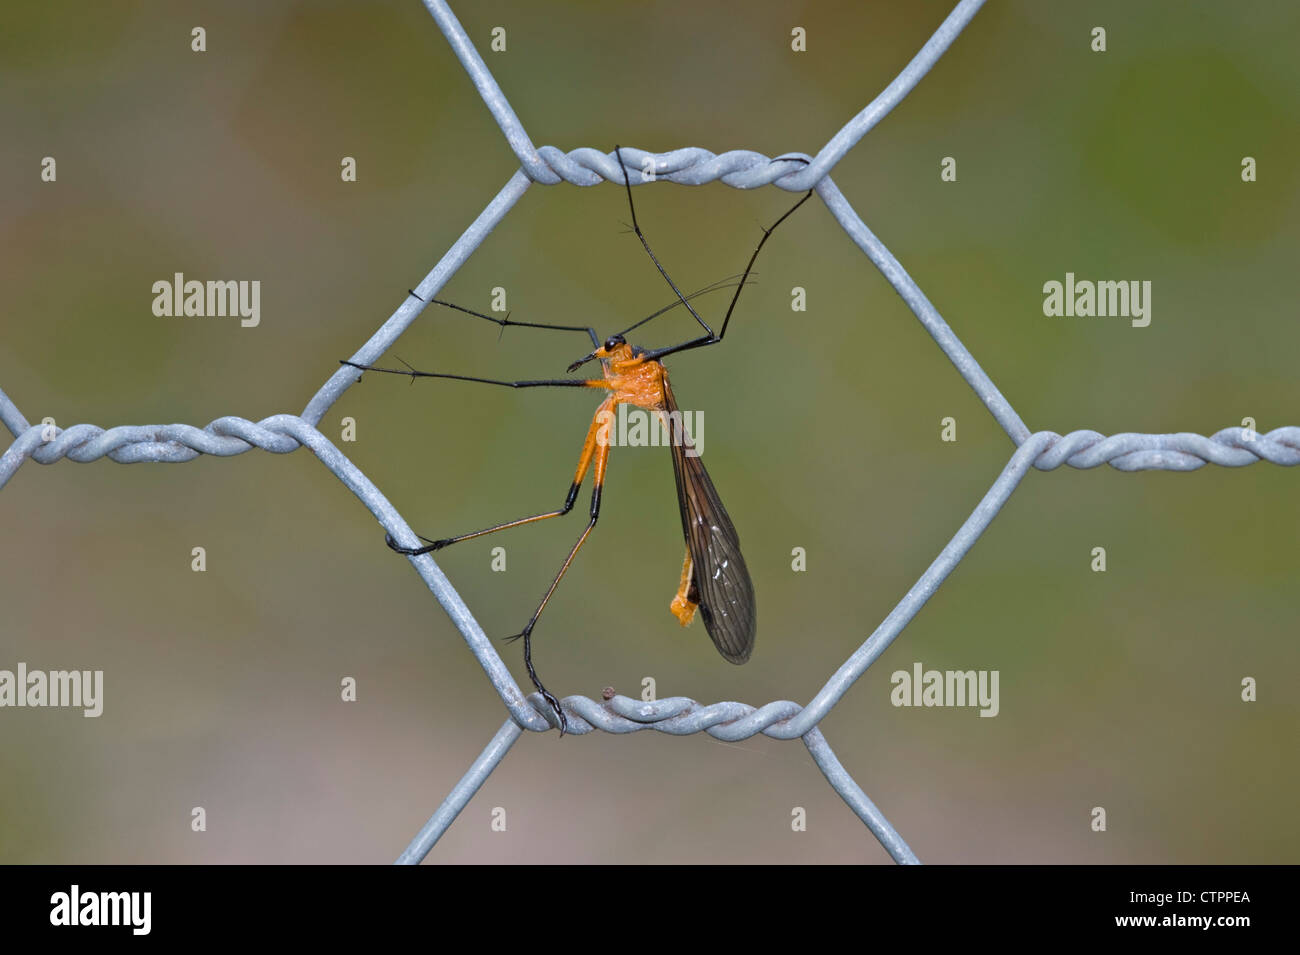 Fly By Wire Stockfotos & Fly By Wire Bilder - Alamy